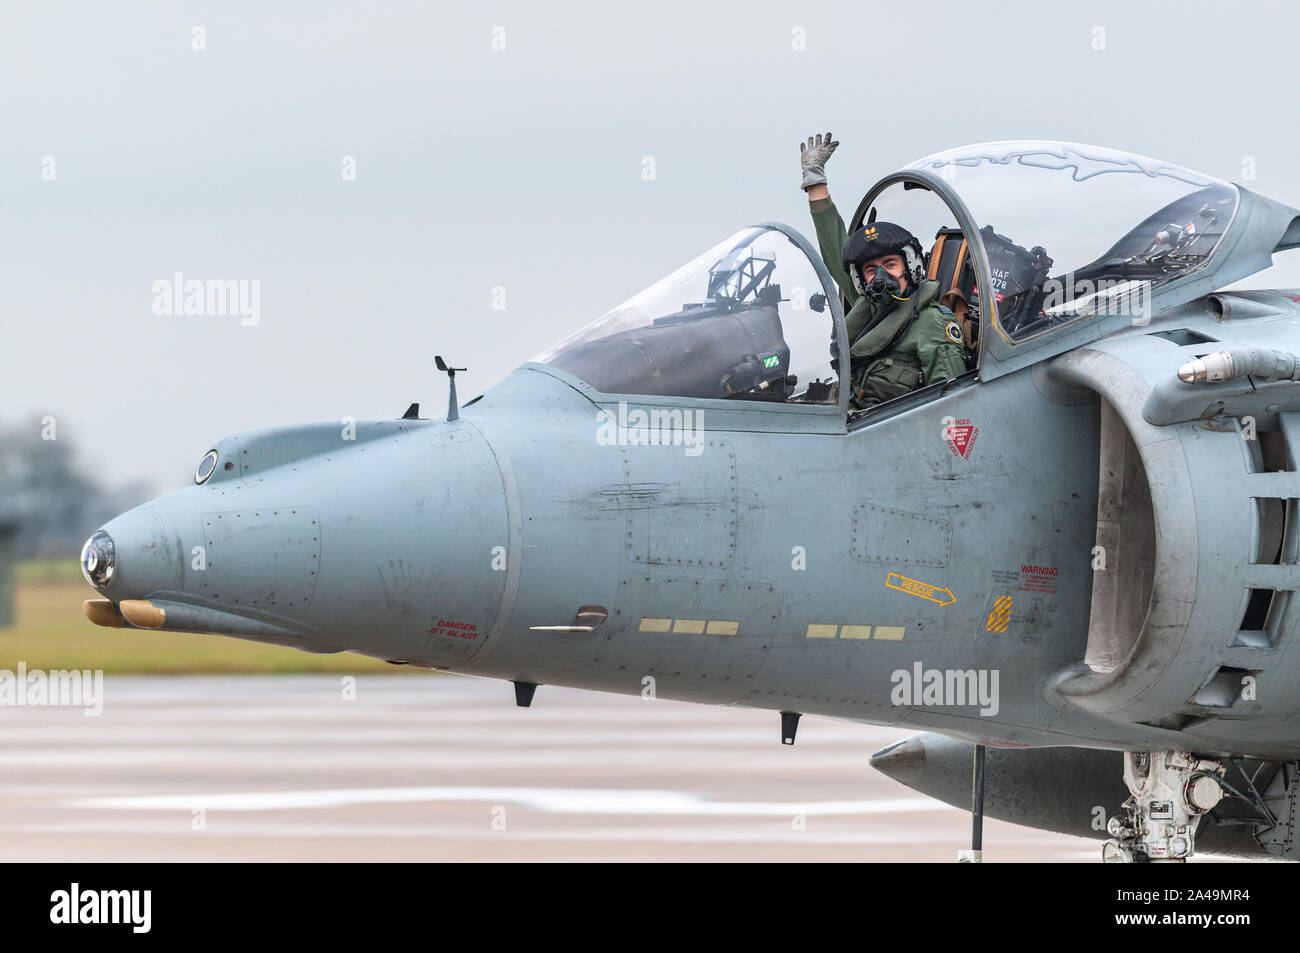 RAF Harrier GR9 taxiing on runway with pilot waving after final flight on 15th December 2010, RAF Cottesmore Stock Photo